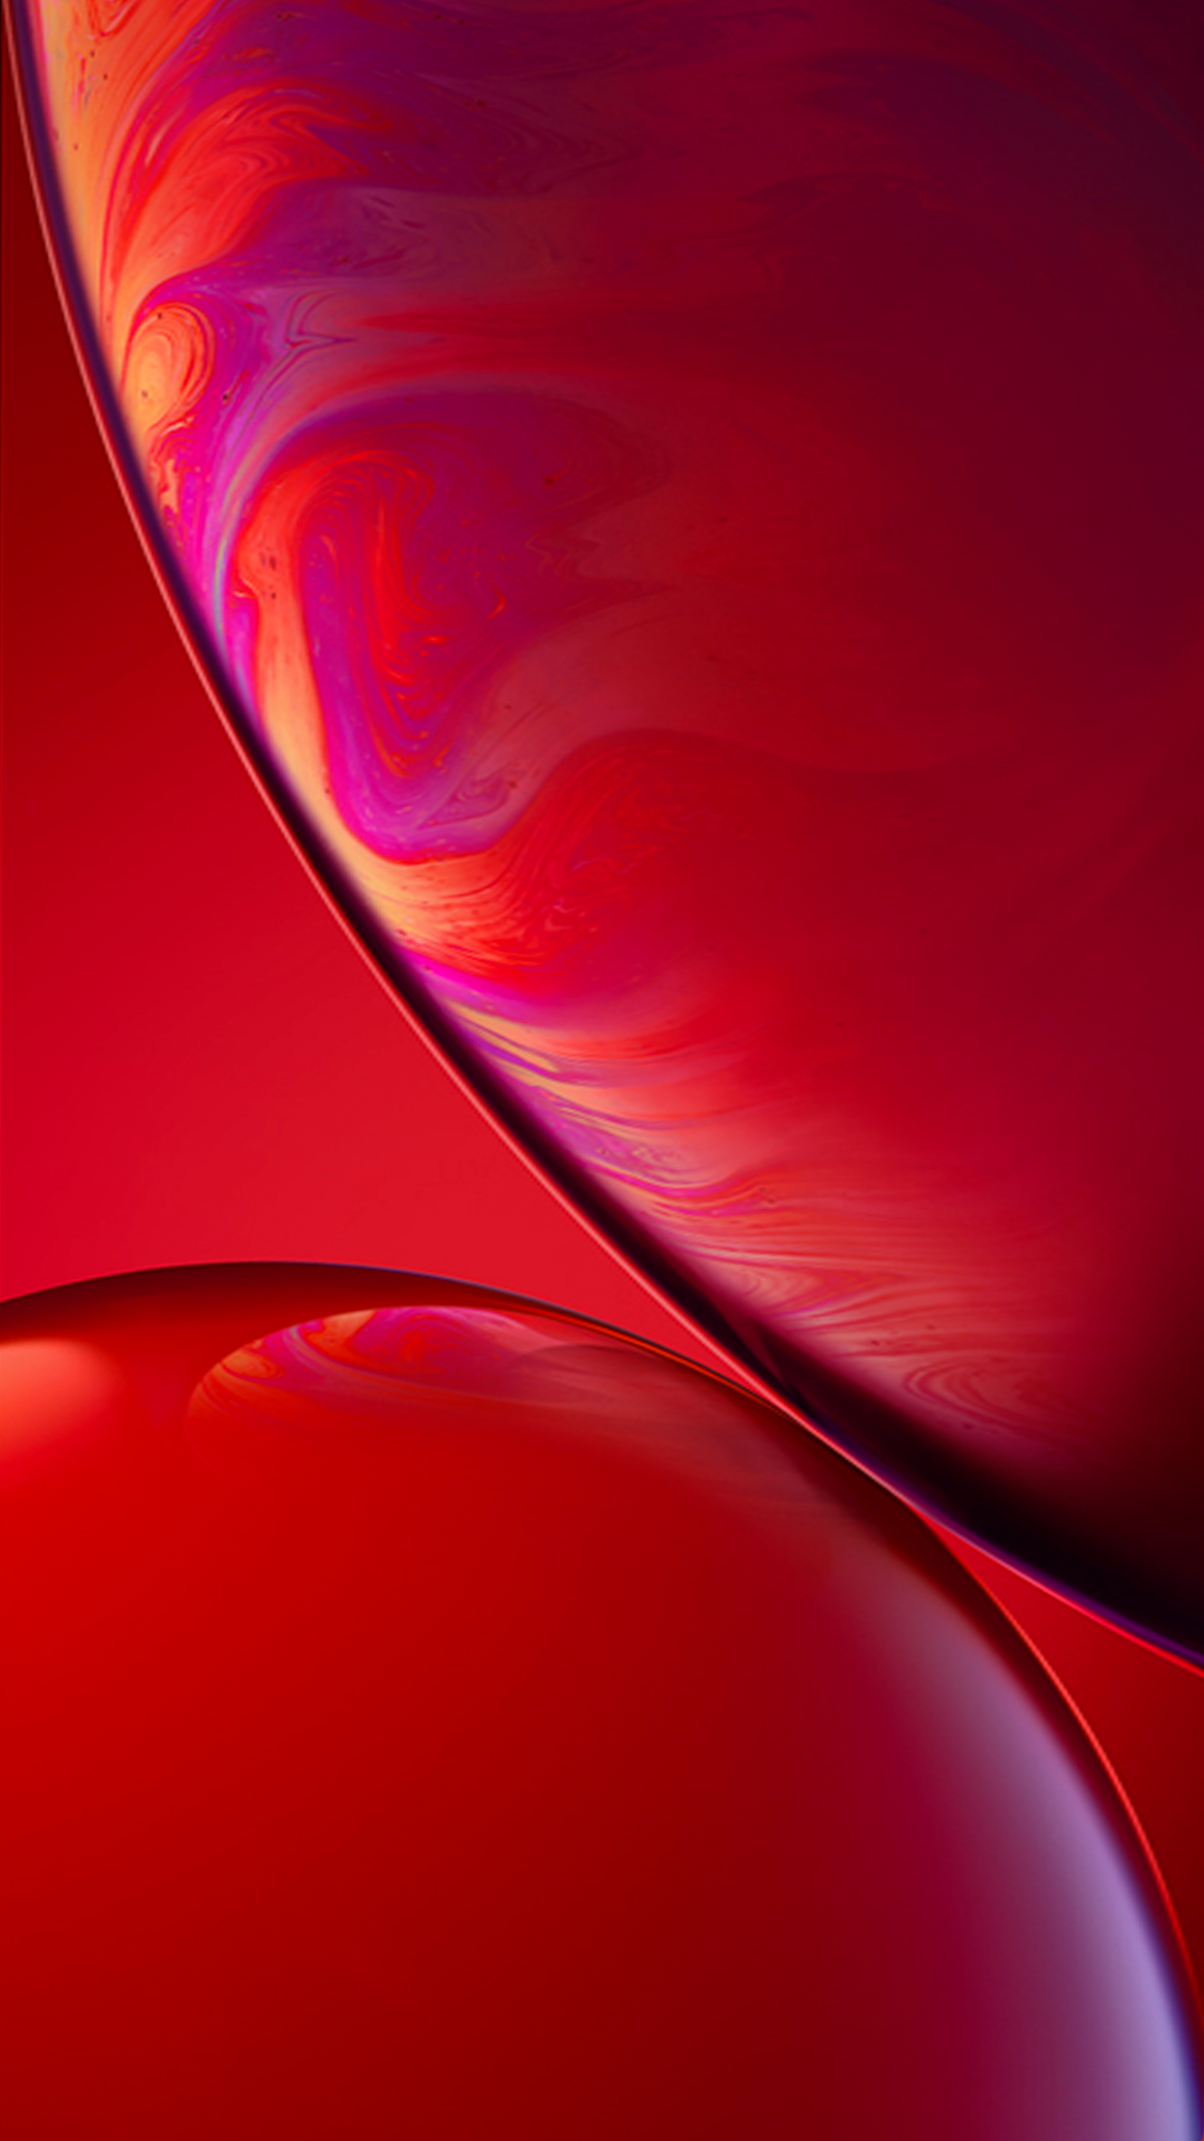 Iphone Wallpaper Dimensions Xr Is Iphone Wallpaper Dimensions Xr The Most Trending Thing Iphone Wallpaper Dimensions Abstract Iphone Wallpaper Stock Wallpaper